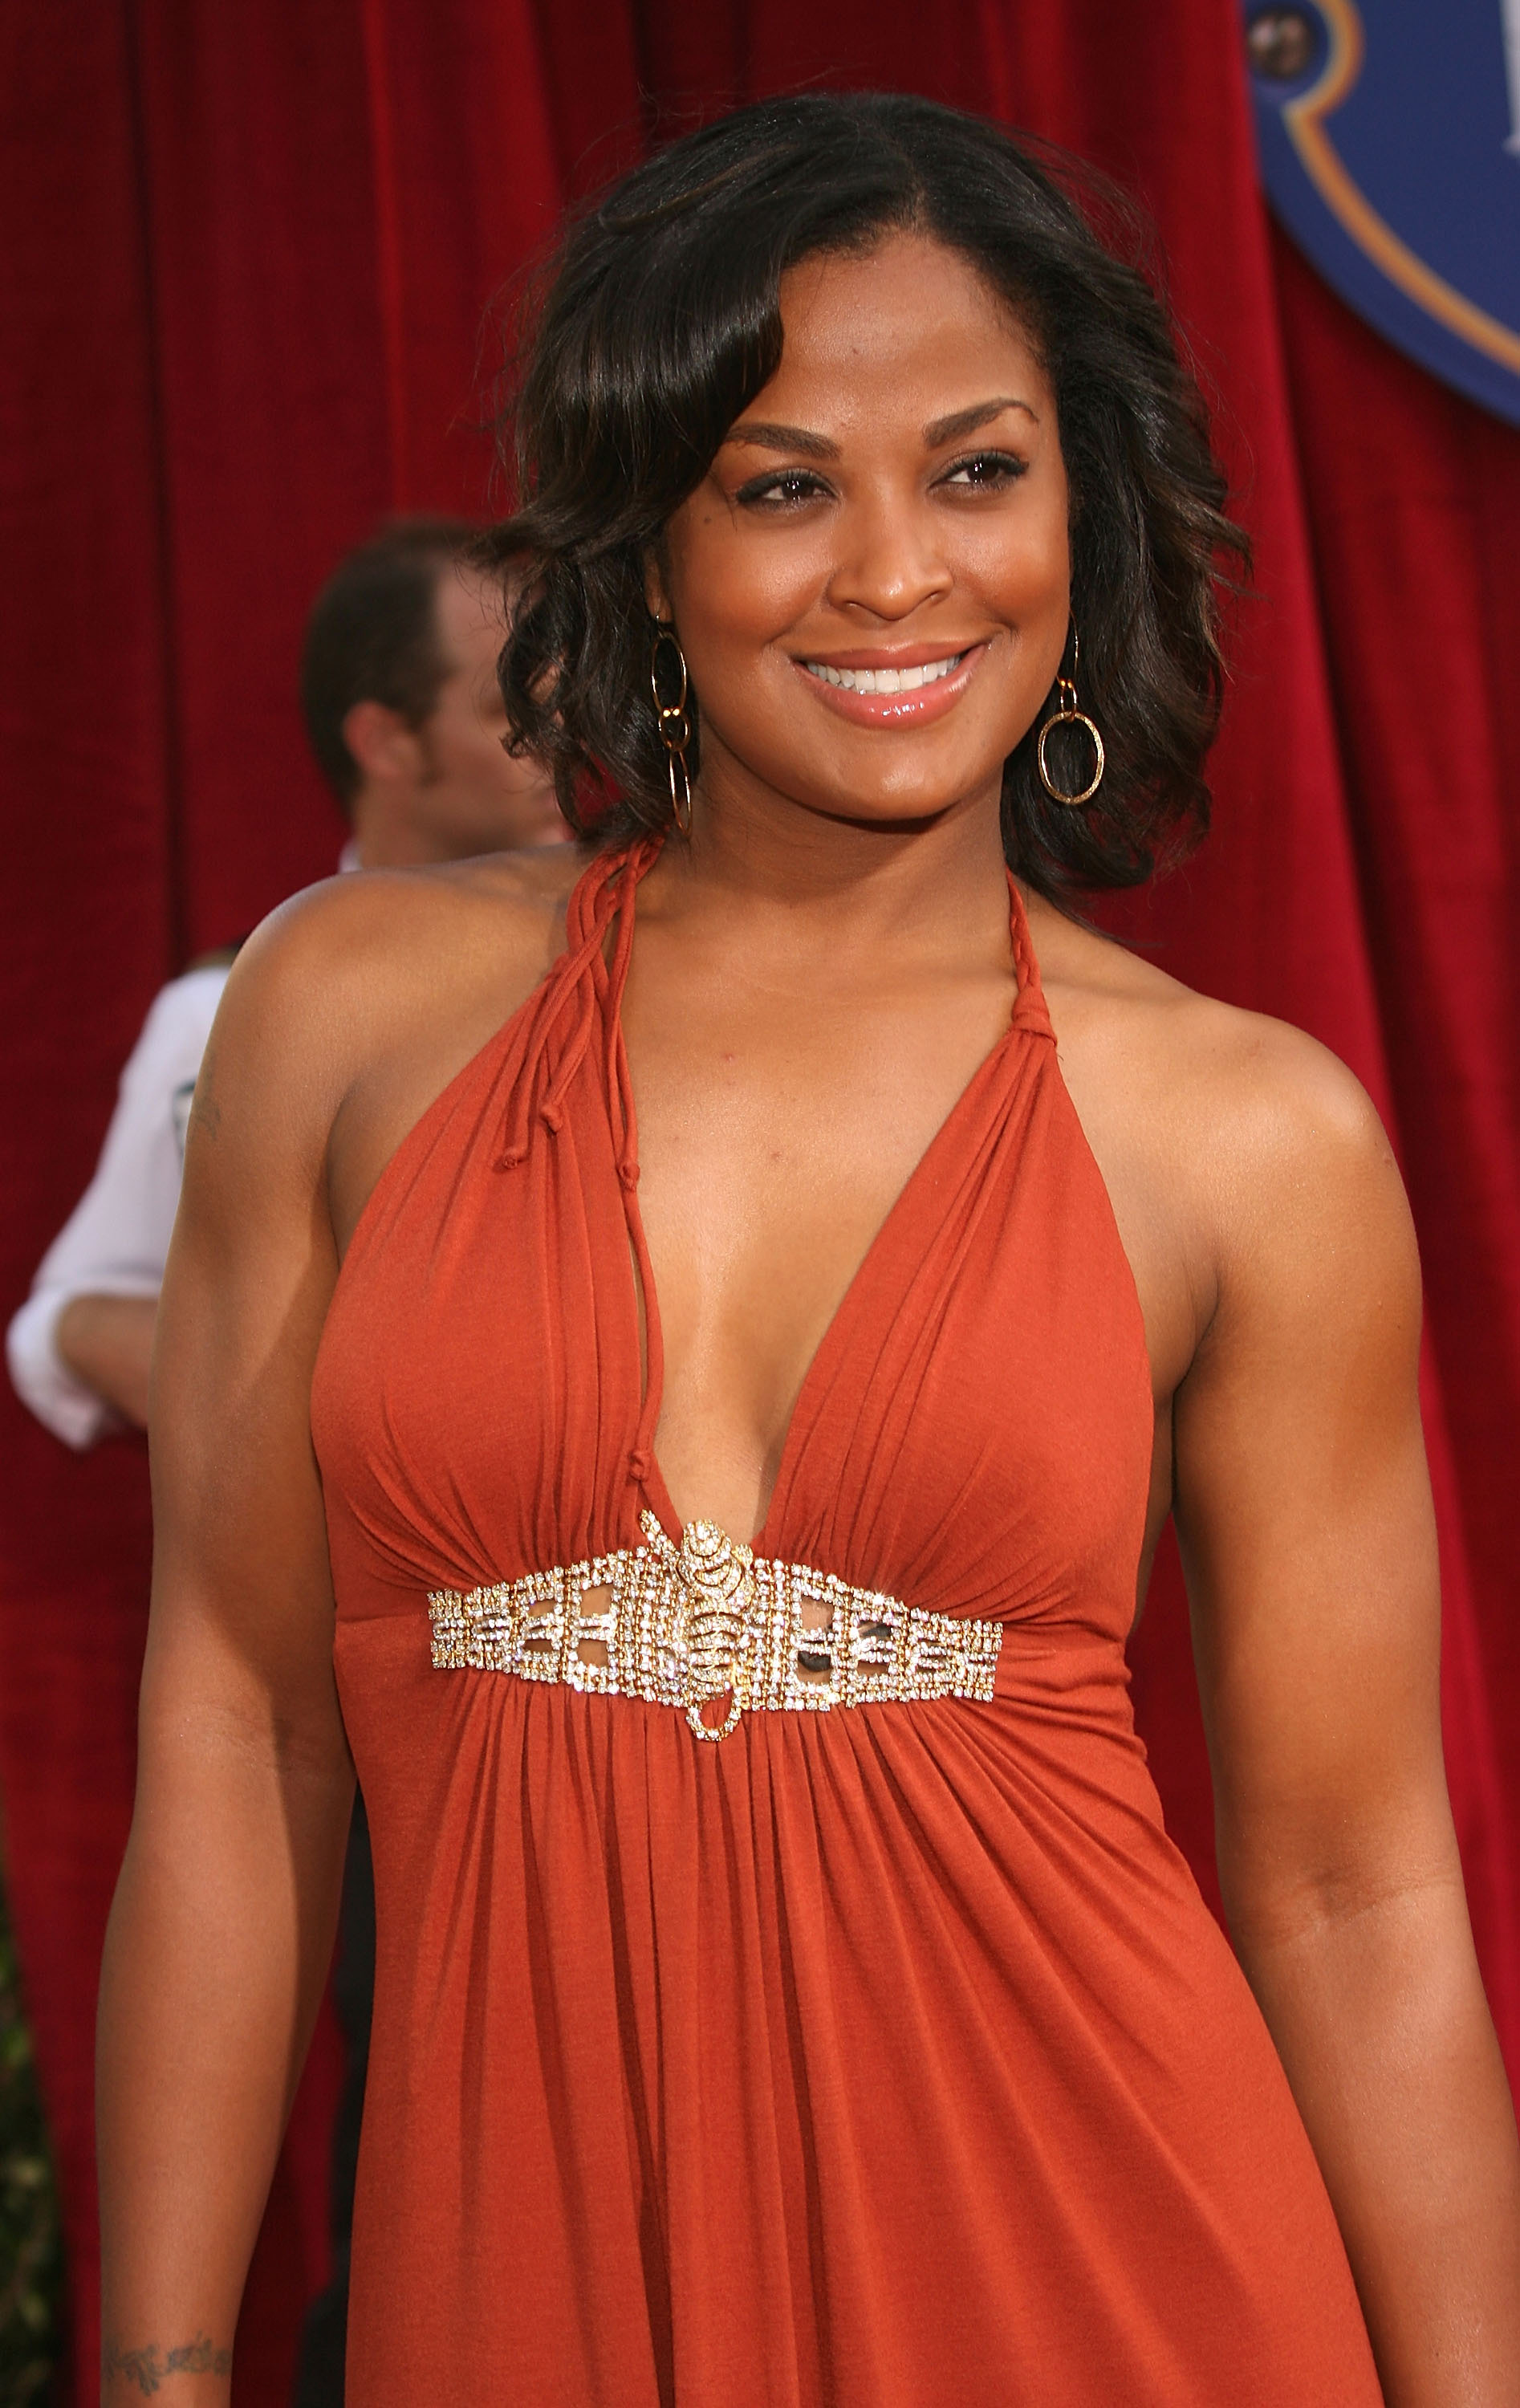 HOLLYWOOD - JUNE 22: Professional boxer Laila Ali attends the 'Ratatouille' film premiere at the Kodak Theatre on June 22, 2007 in Hollywood, California.  (Photo by Frederick M. Brown/Getty Images)